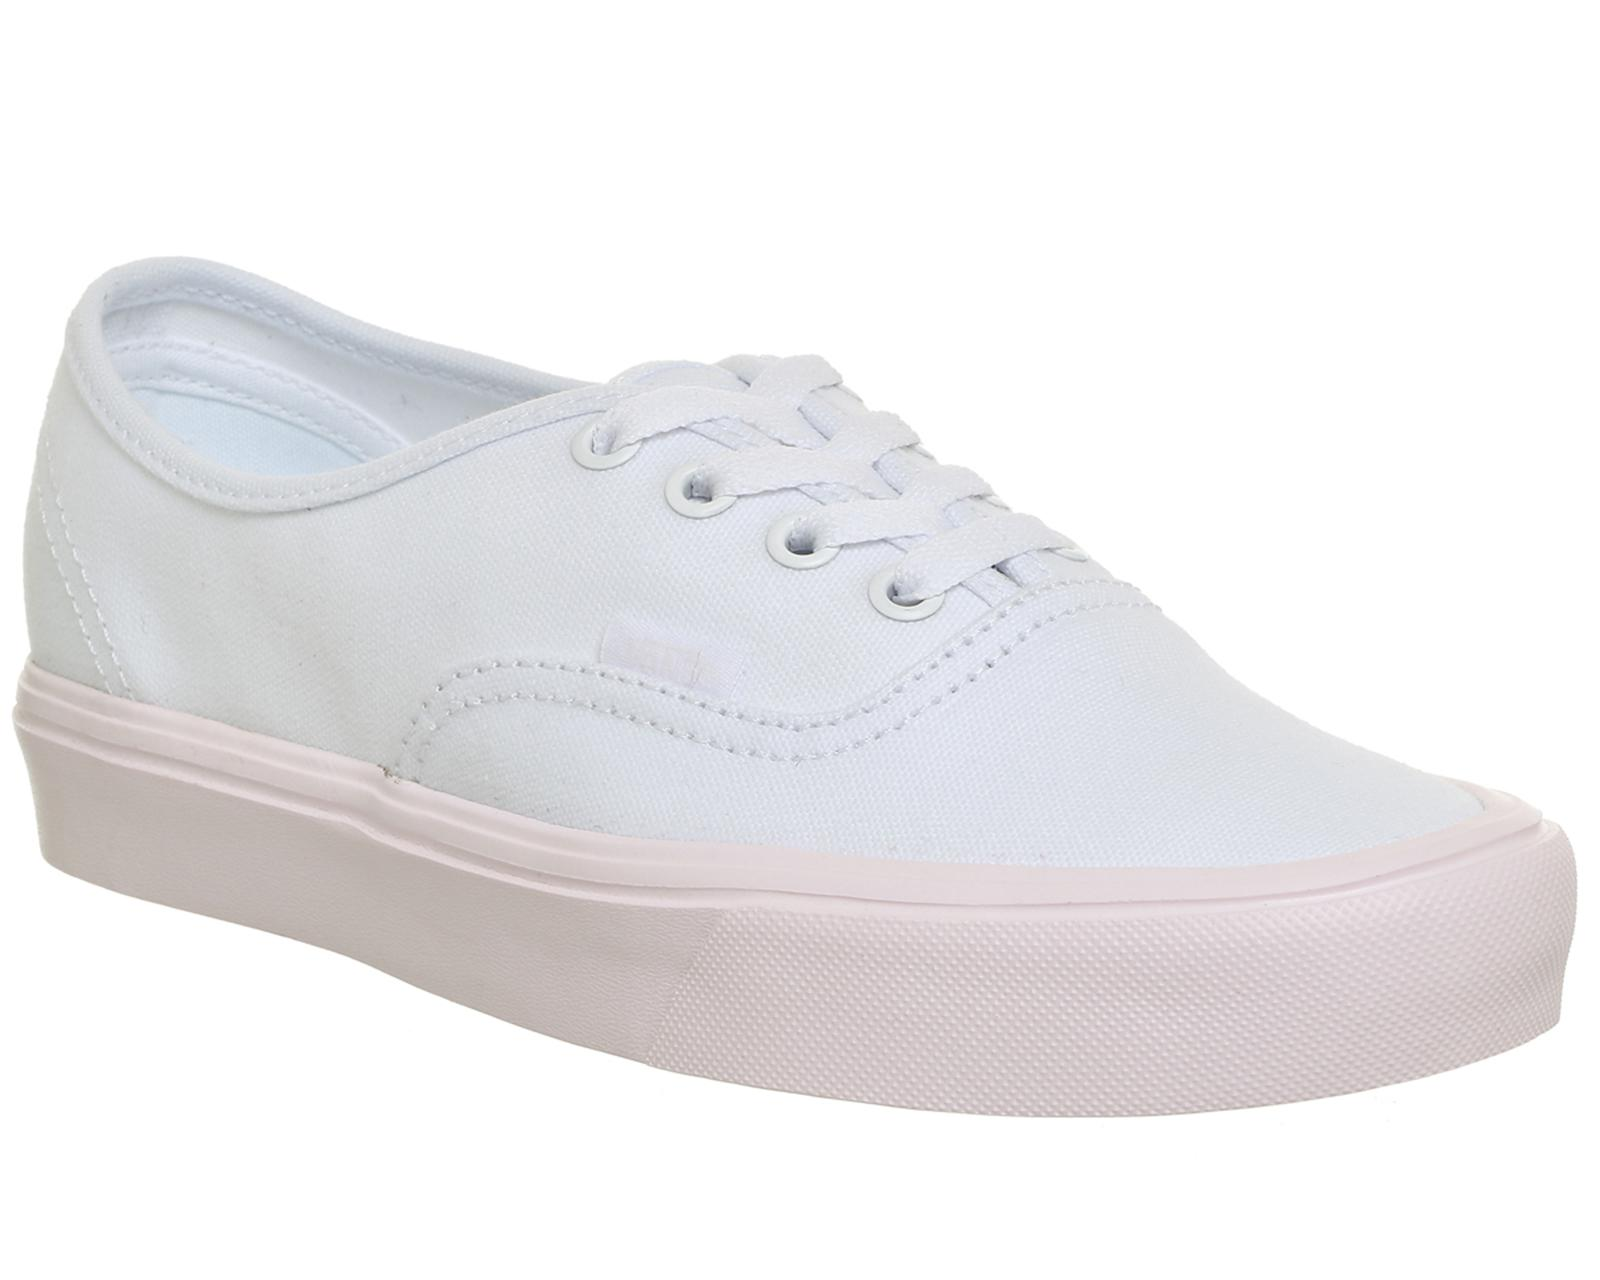 3f7ab0a25e1a Lyst - Vans Authentic Lite Trainers With Pink Pop Sole